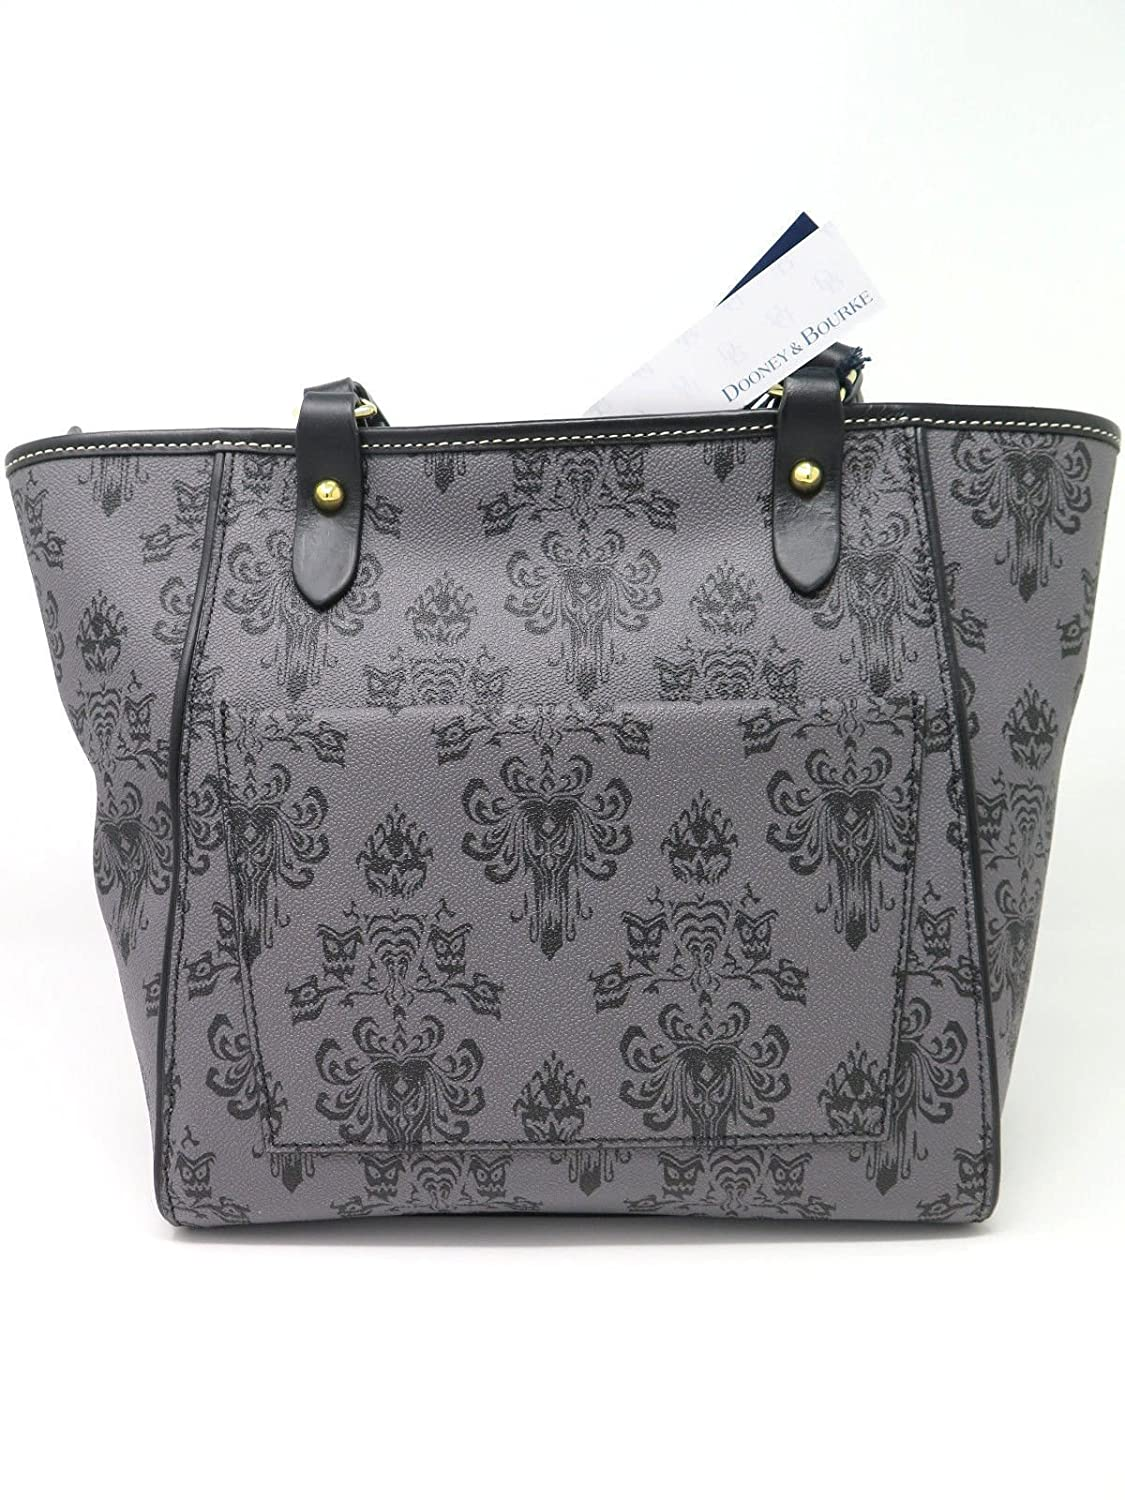 Dooney & Bourke Disney Haunted Mansion Nylon Leisure Shopper: Handbags:  Amazon.com